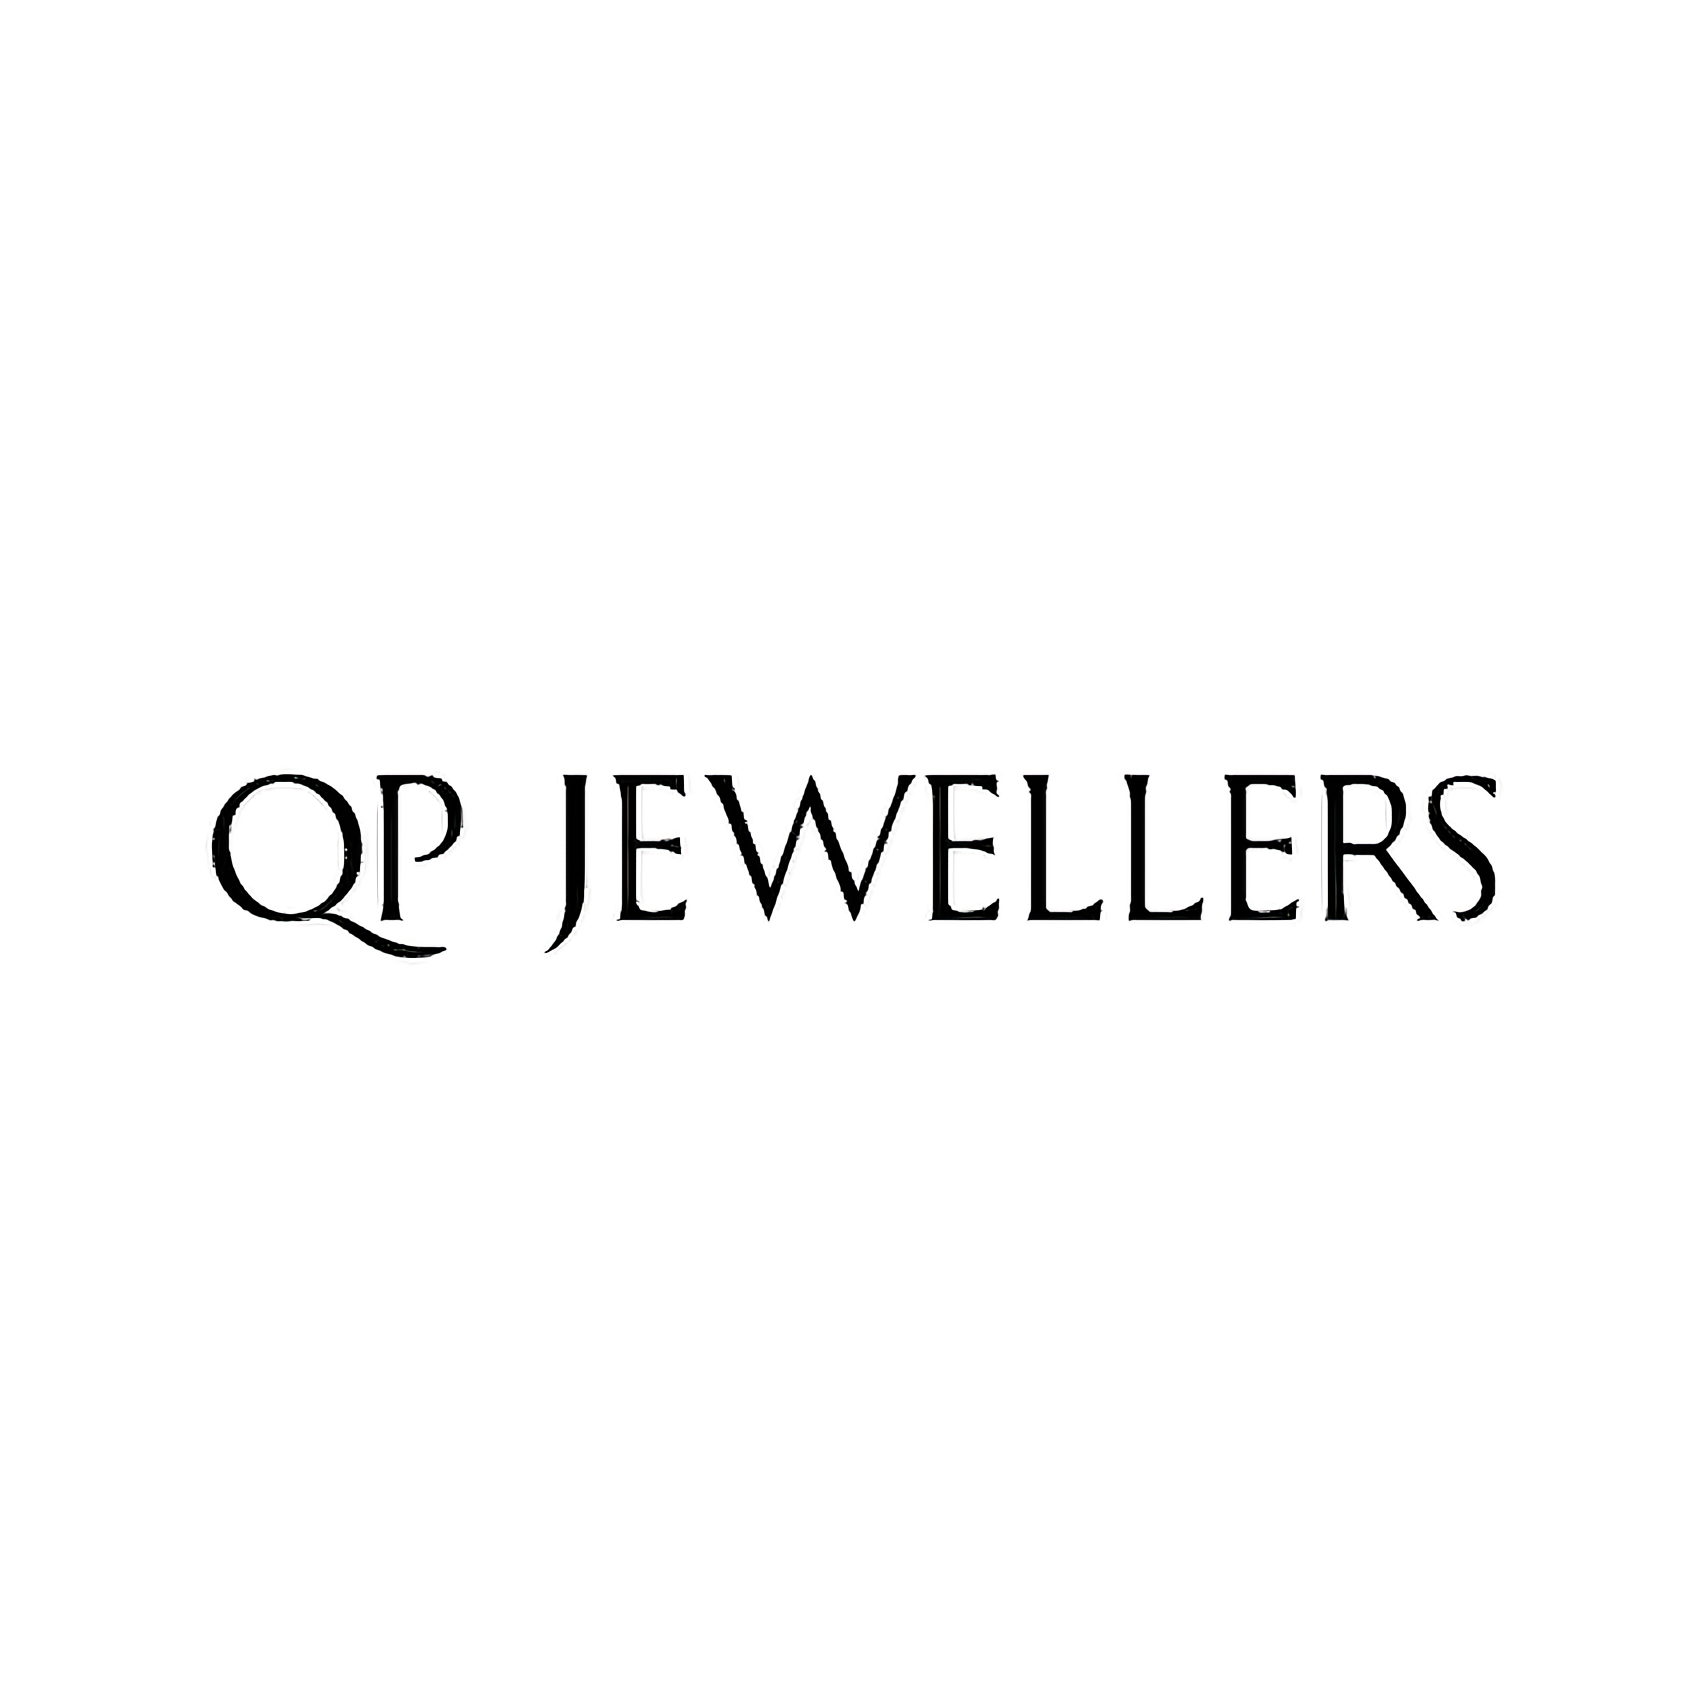 QP Jewellers Coupons & Promo Codes